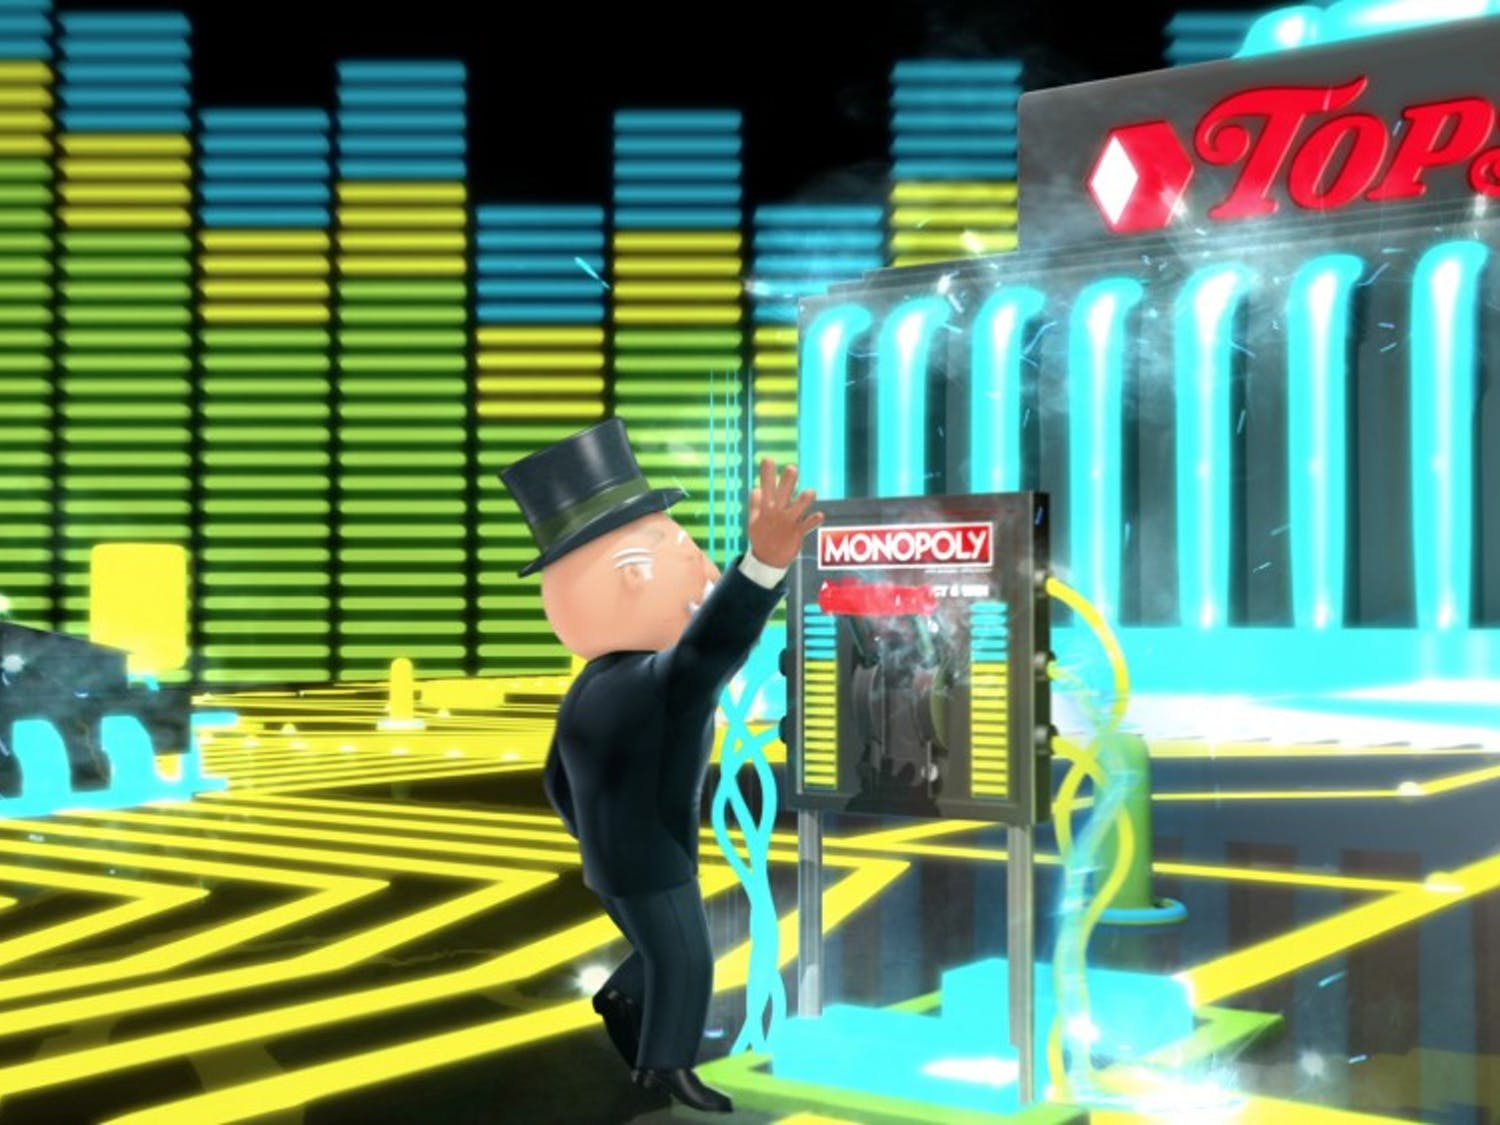 Rebel One Studios has produced the marketing animation for Tops Friendly Market's Monopoly contests.